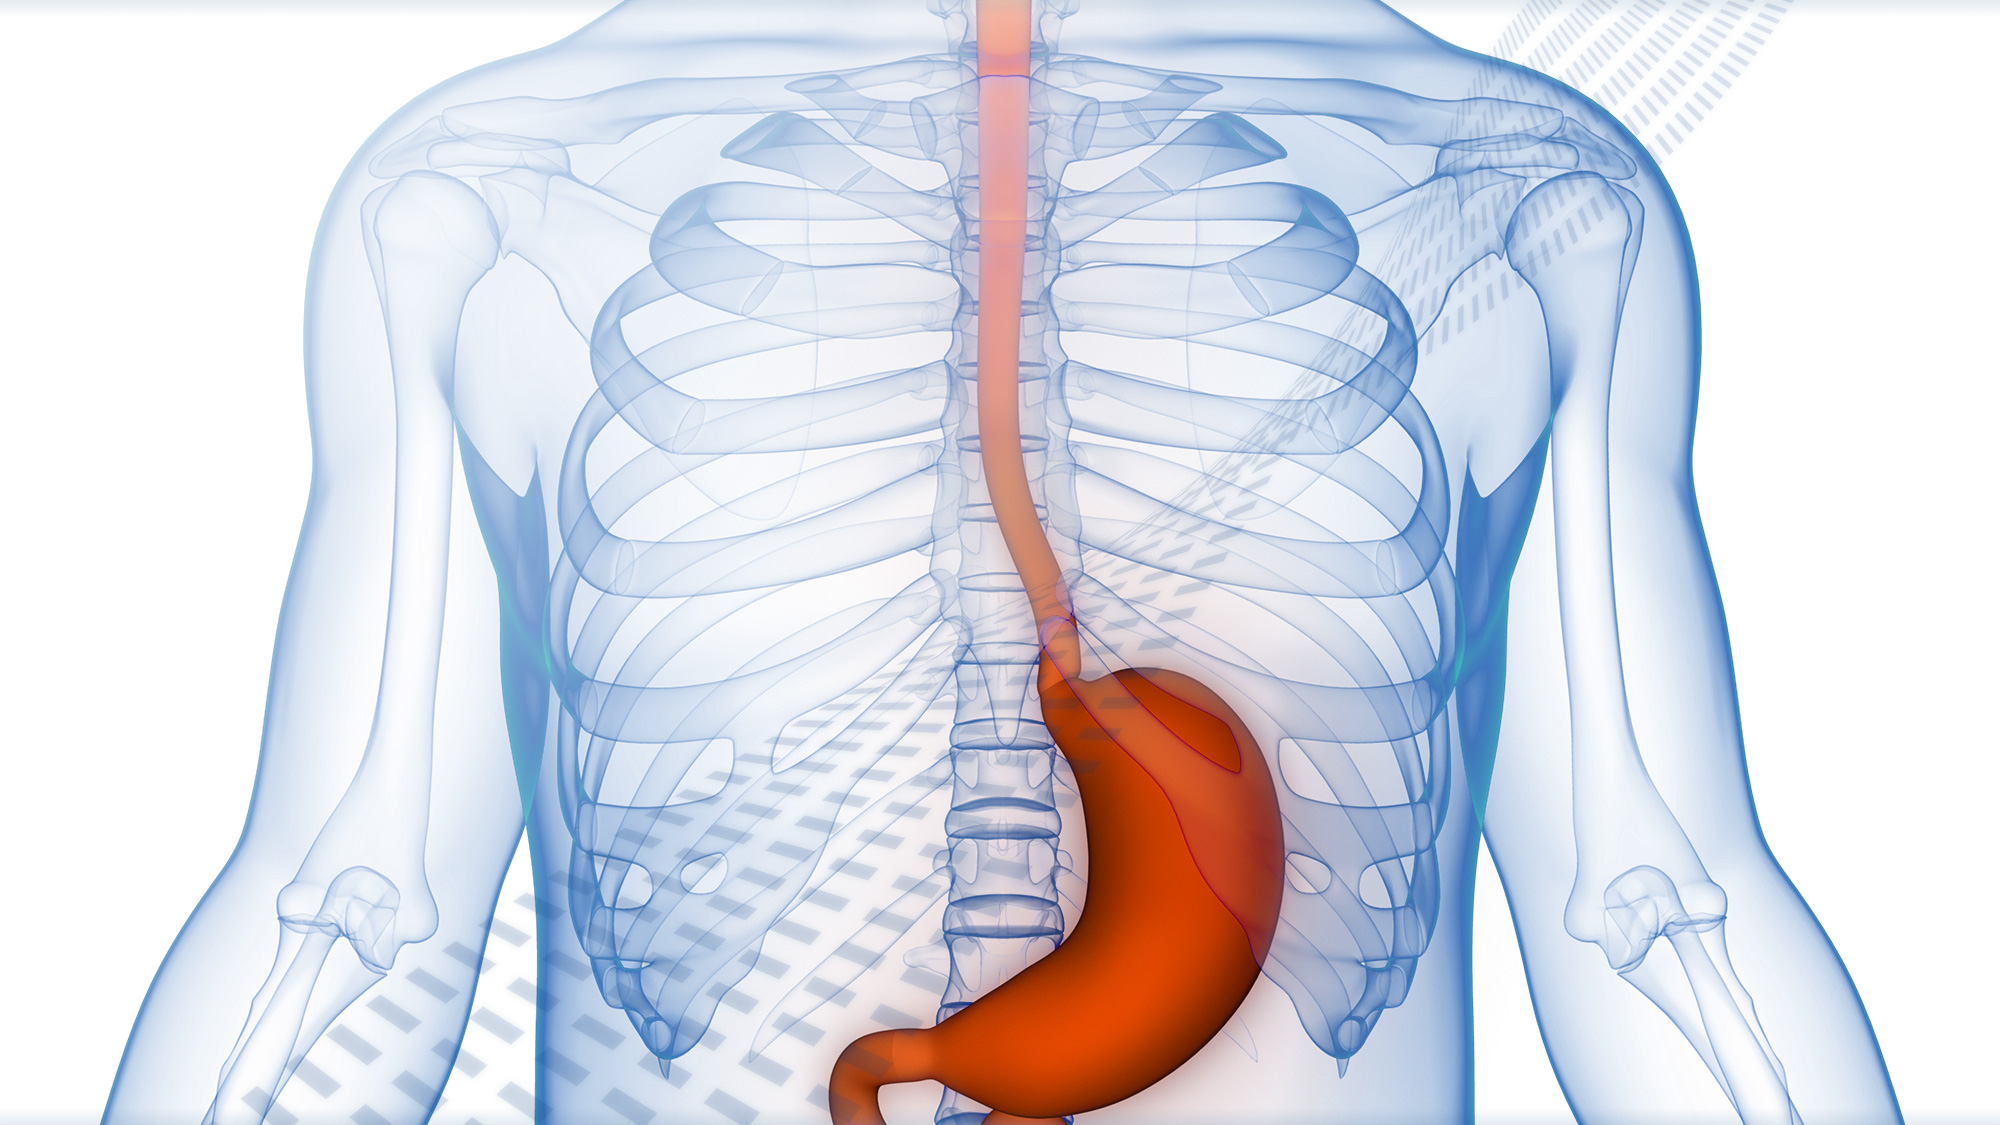 Developing Transformative Therapies to Advance the Treatment of Gastrointestinal (GI) Disorders